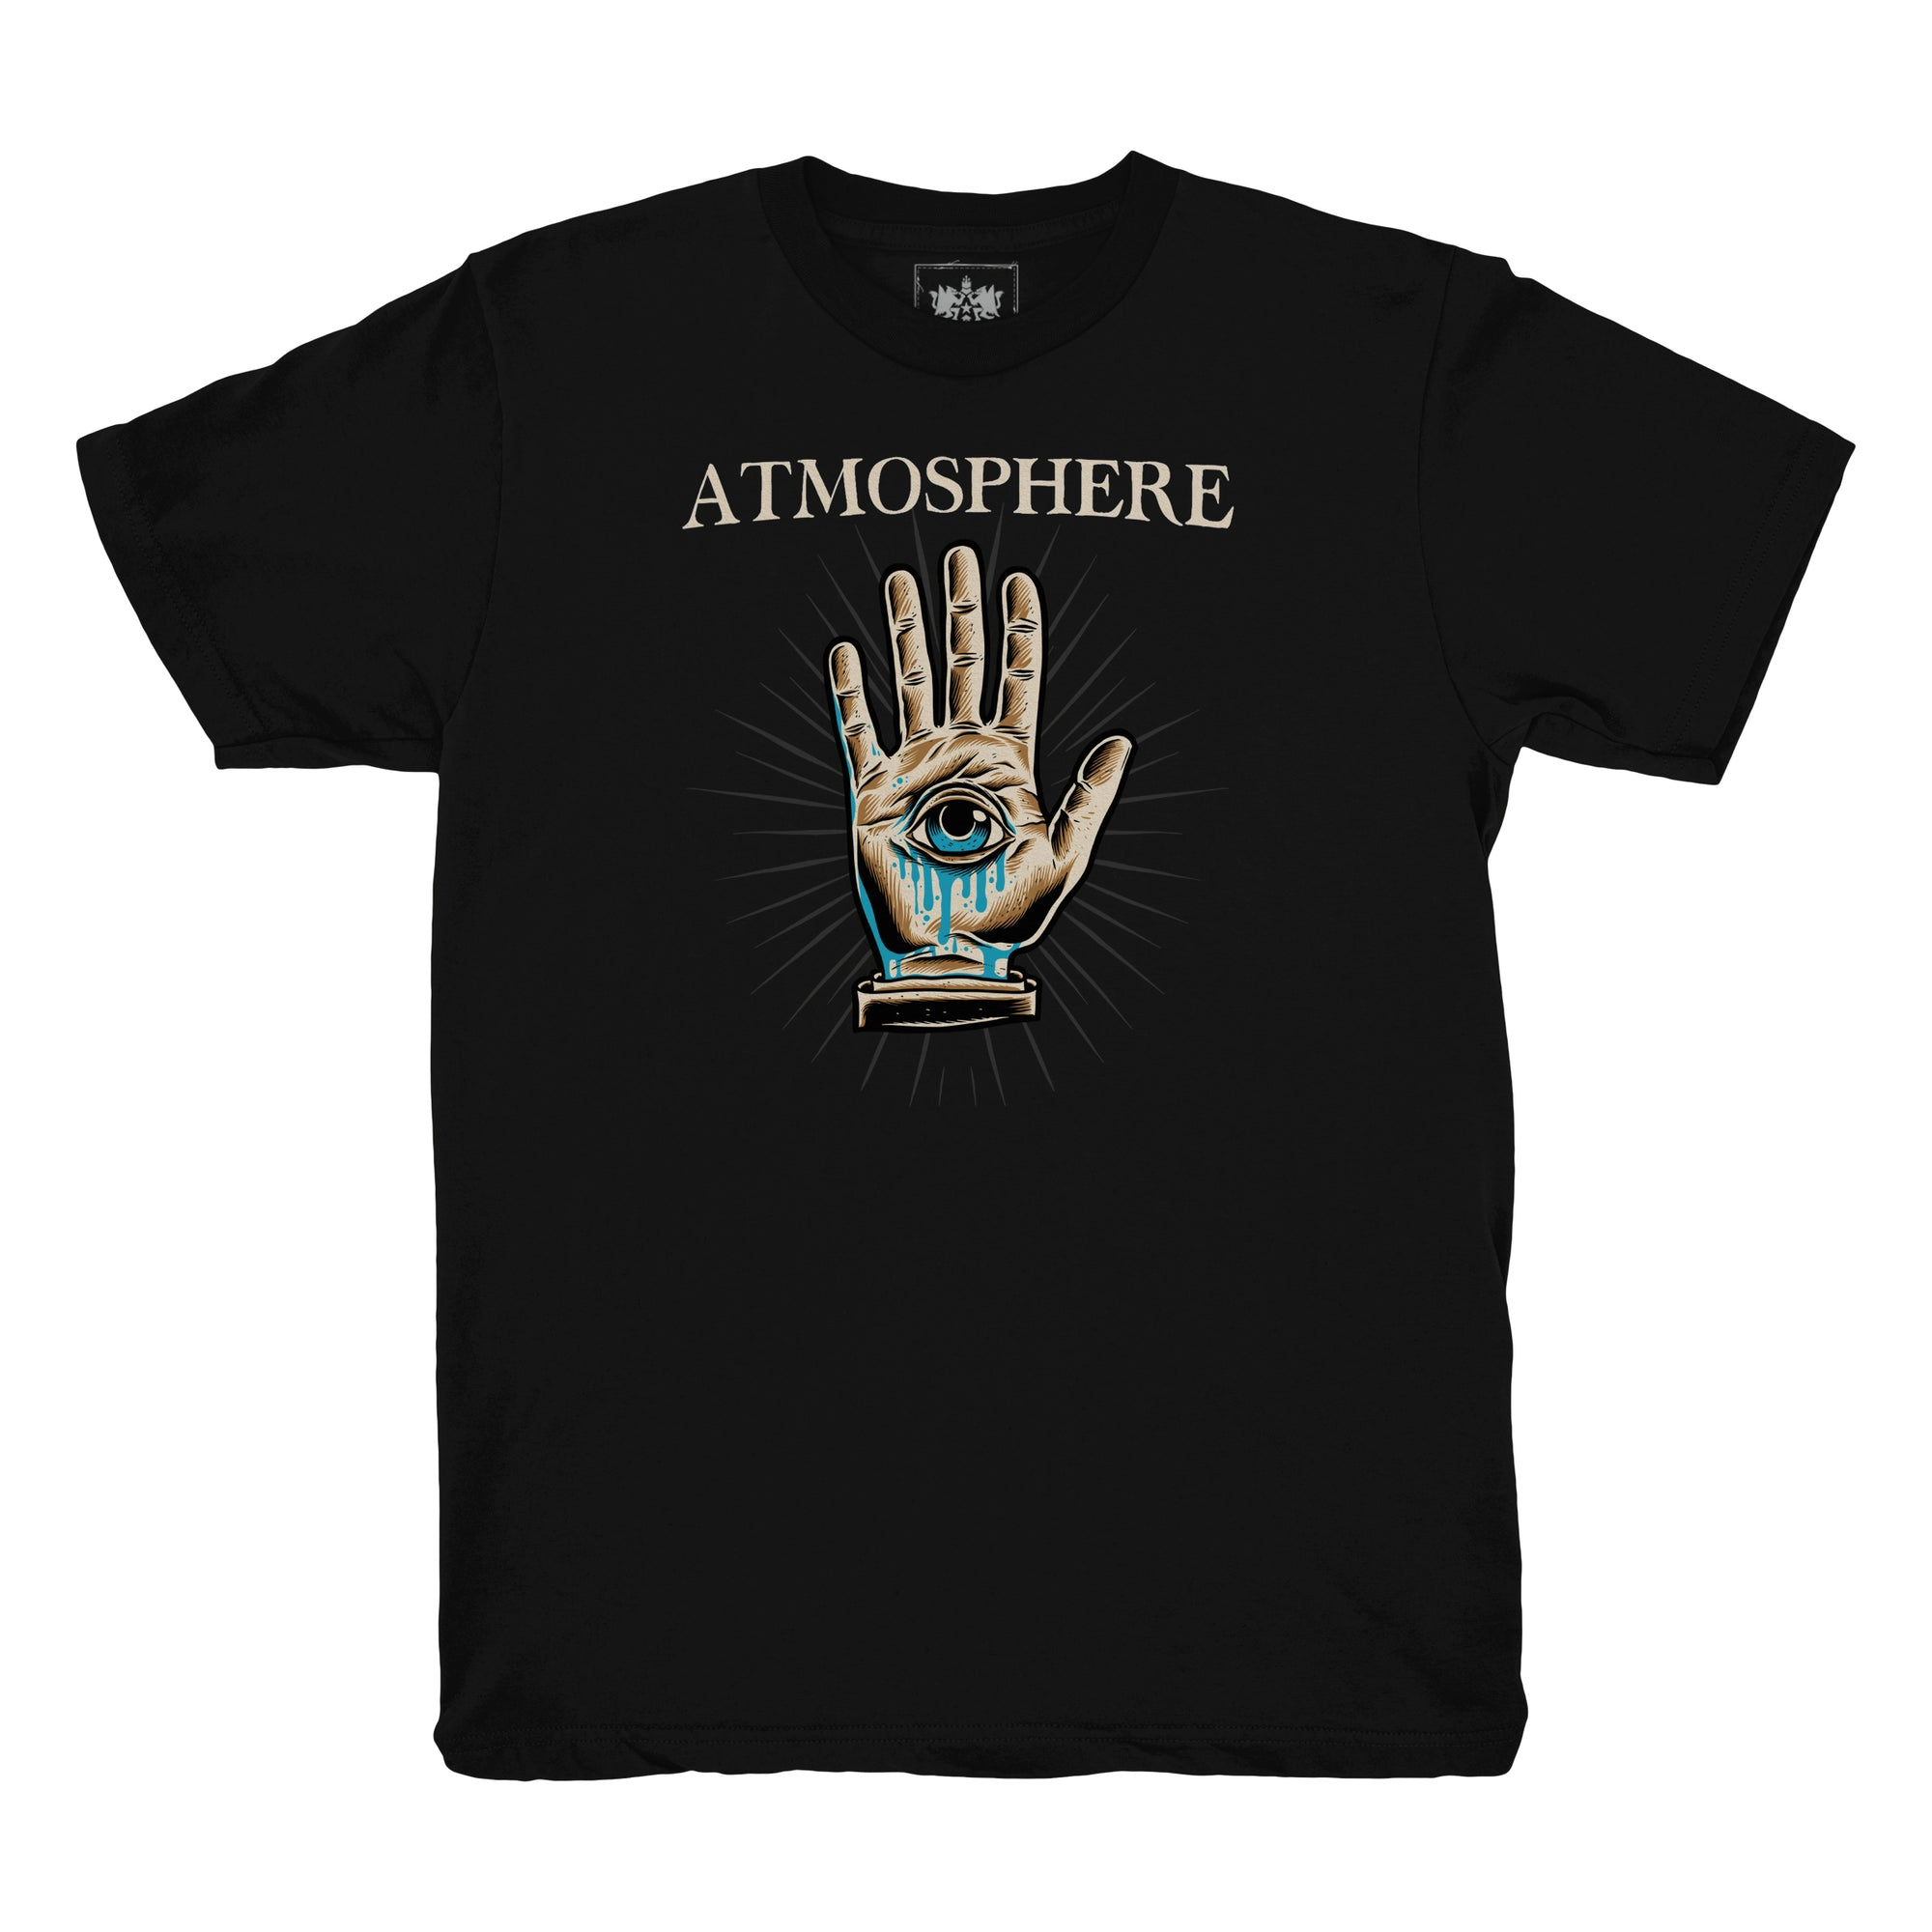 "Atmosphere ""Handyman"" T-Shirt"